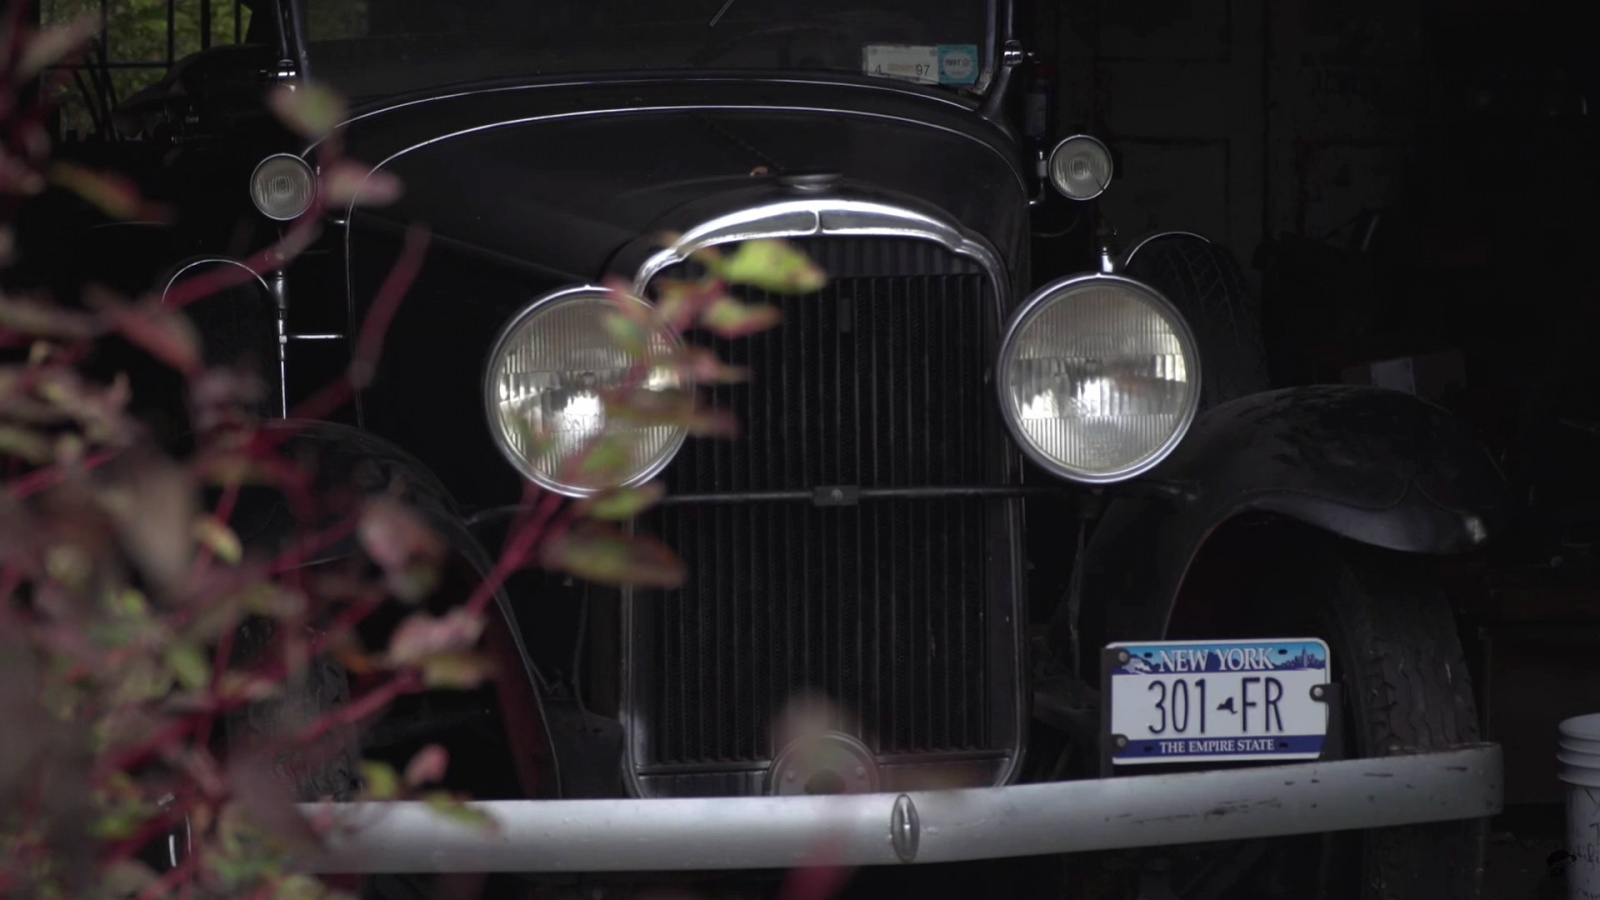 How To Find An Old Car You Once Owned